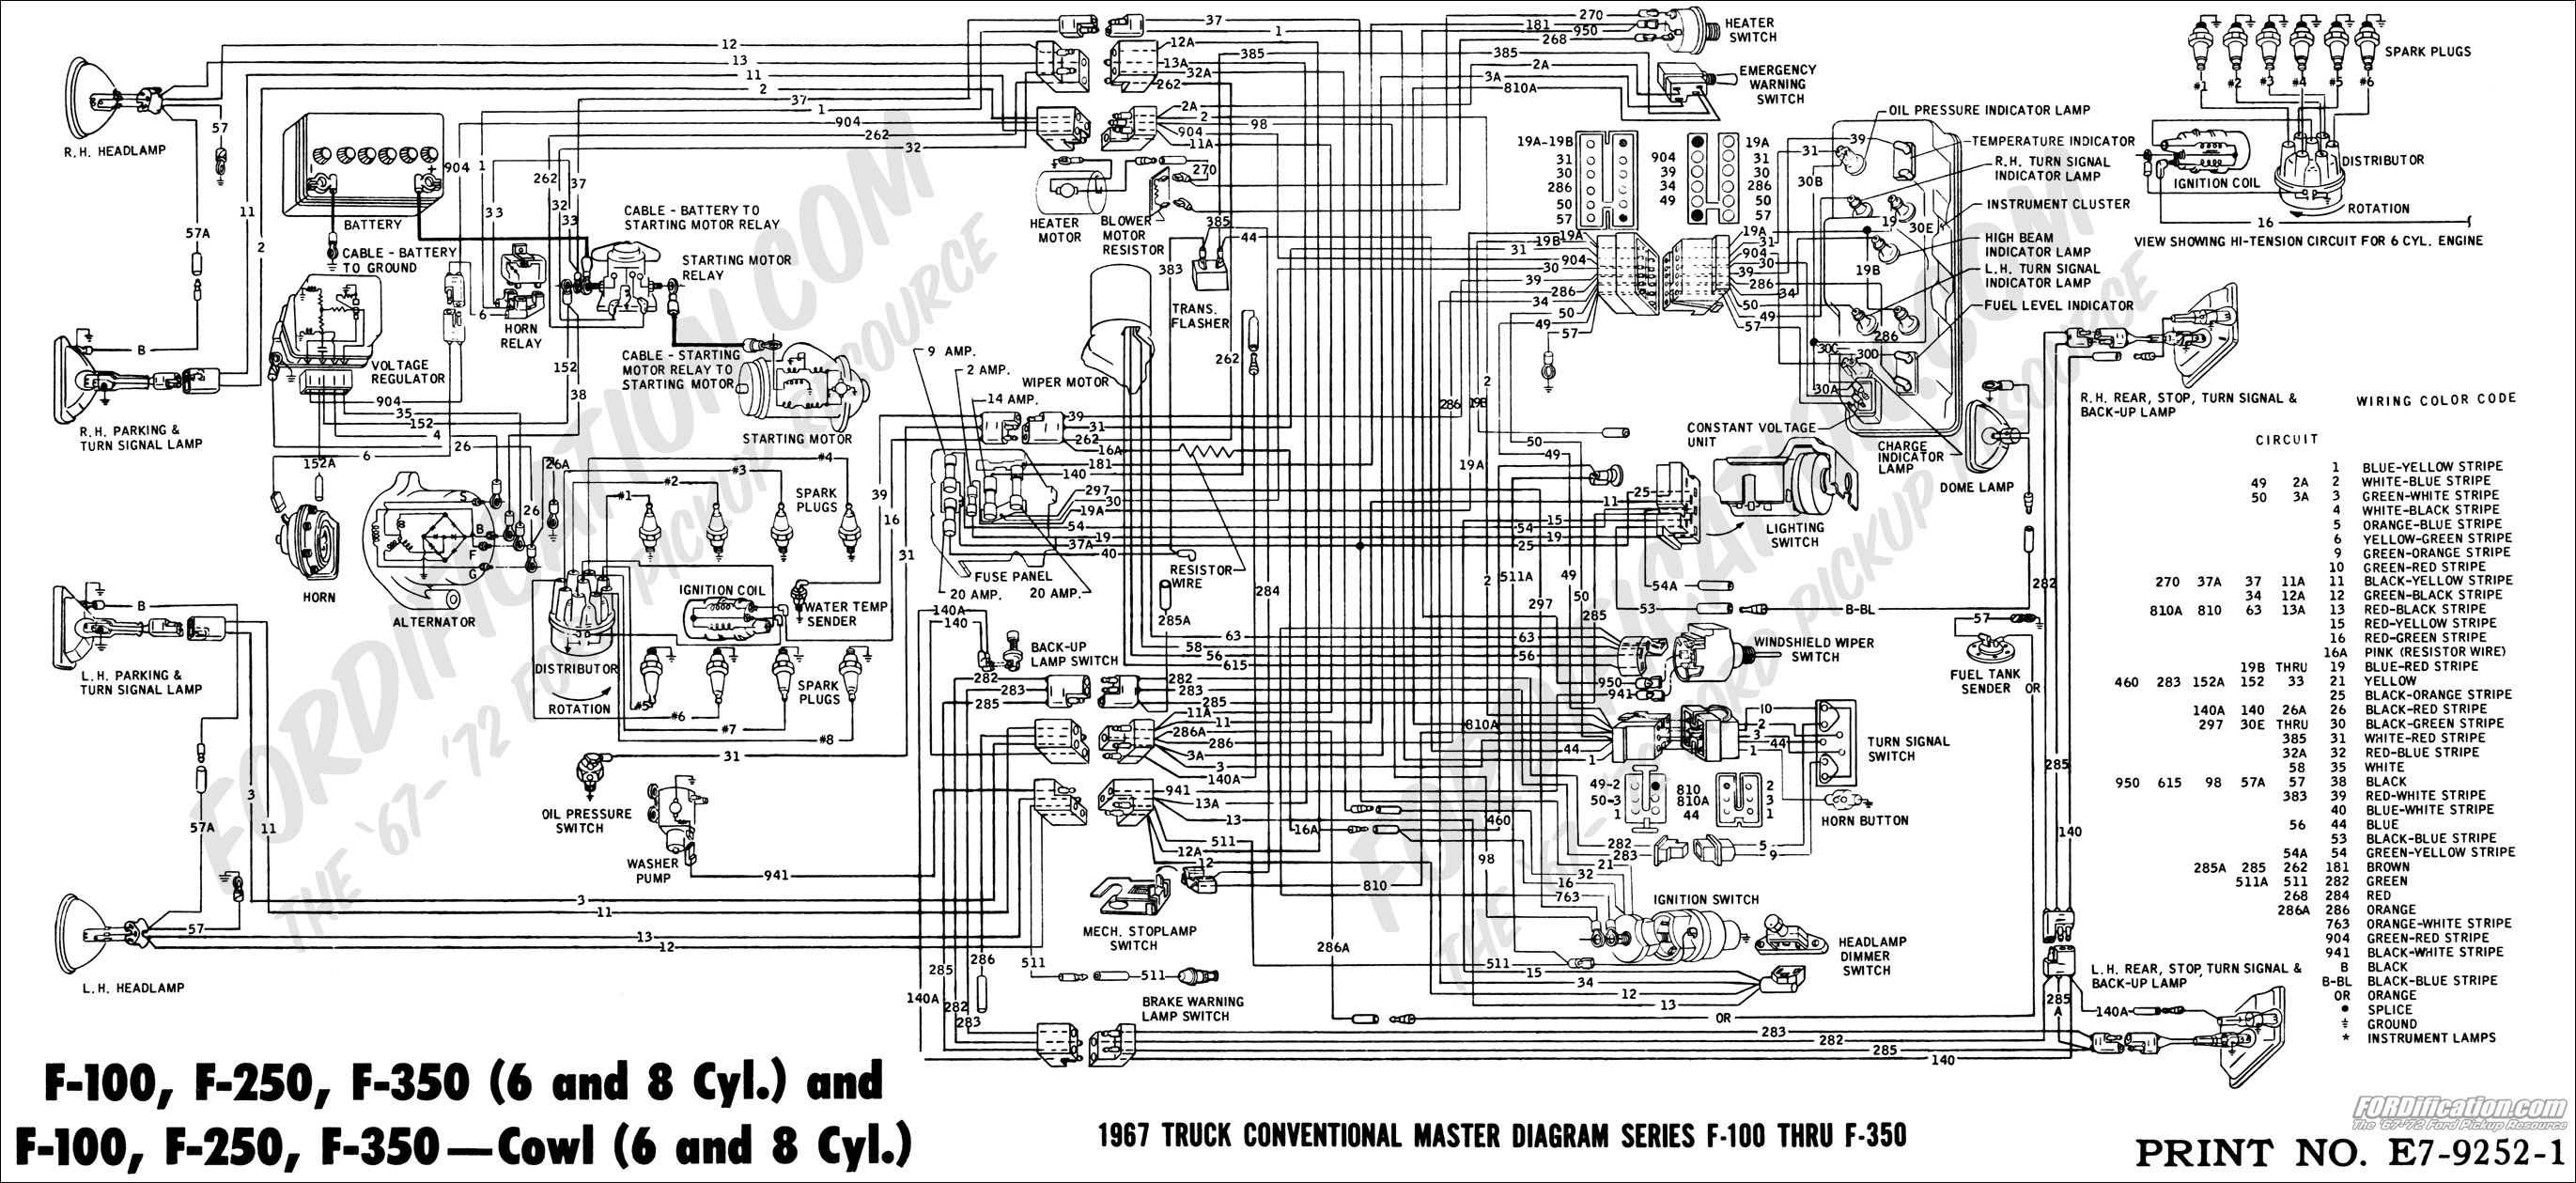 1987 Ford F600 Wiring Diagram - Gota Wiring Diagram •